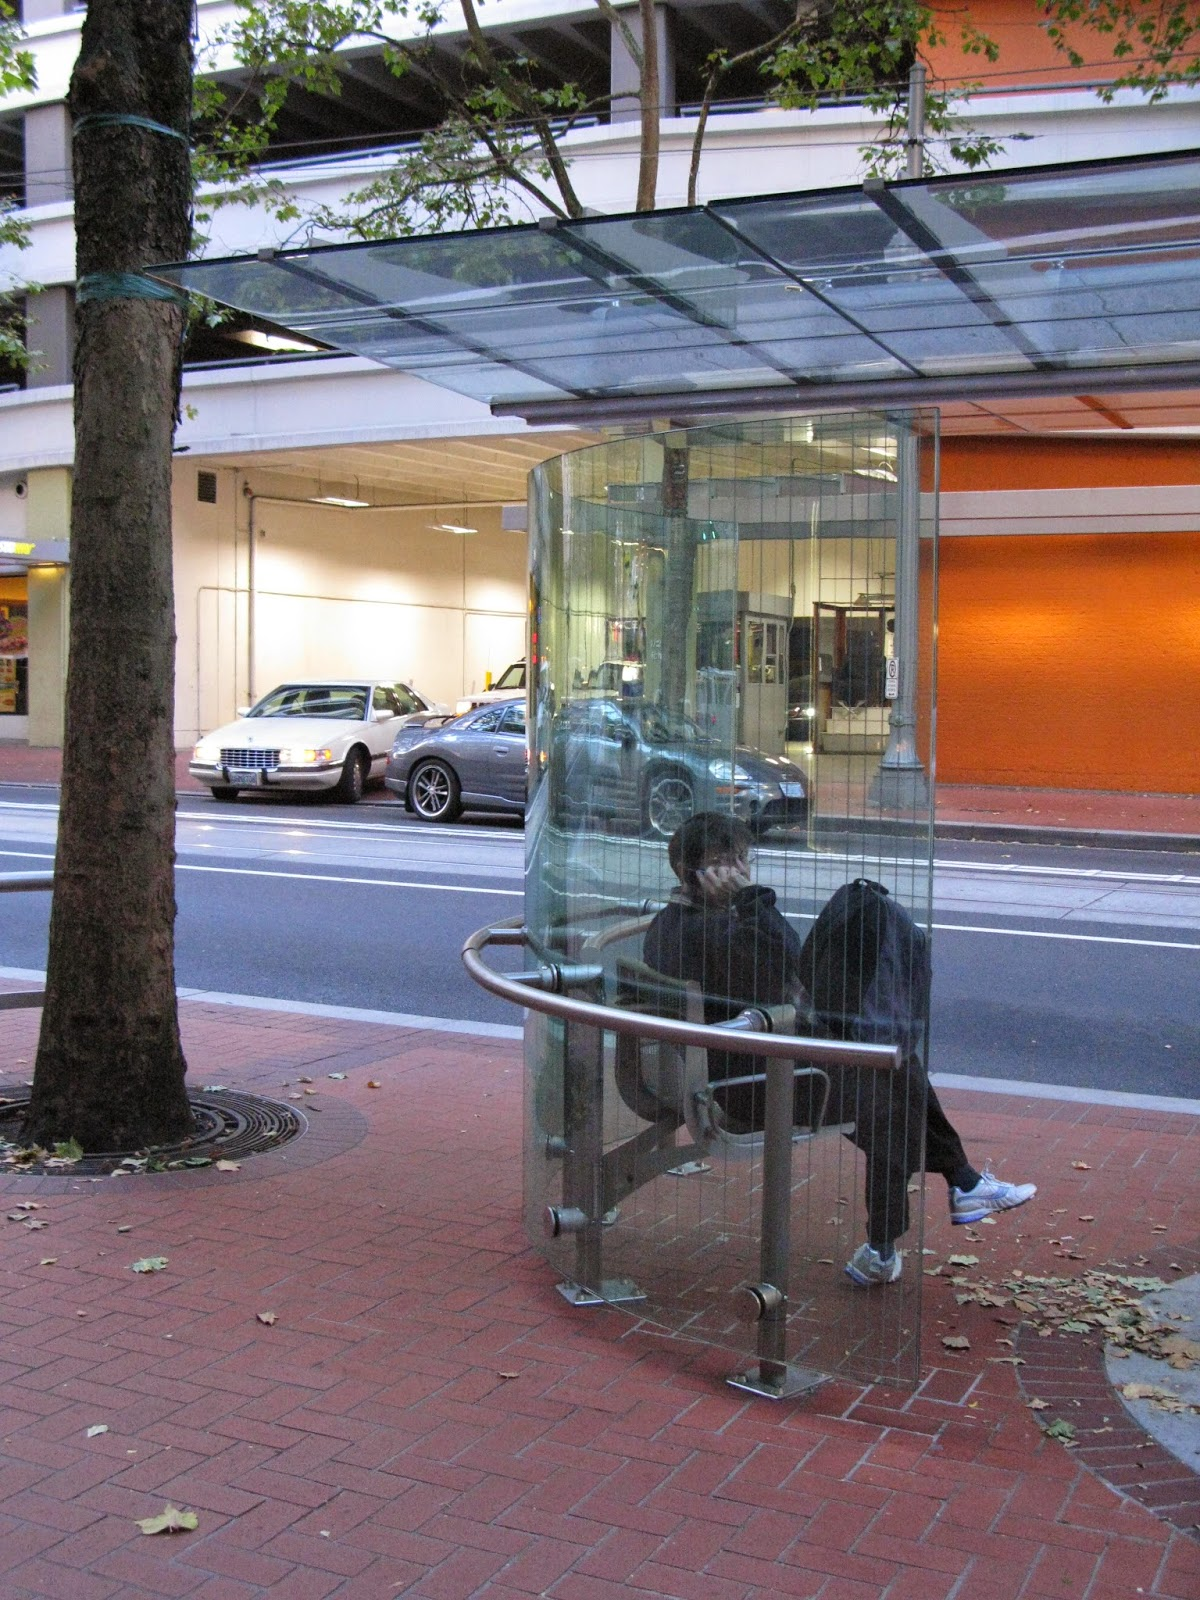 Urban bus shelter with windscreen and seating, Portland OR